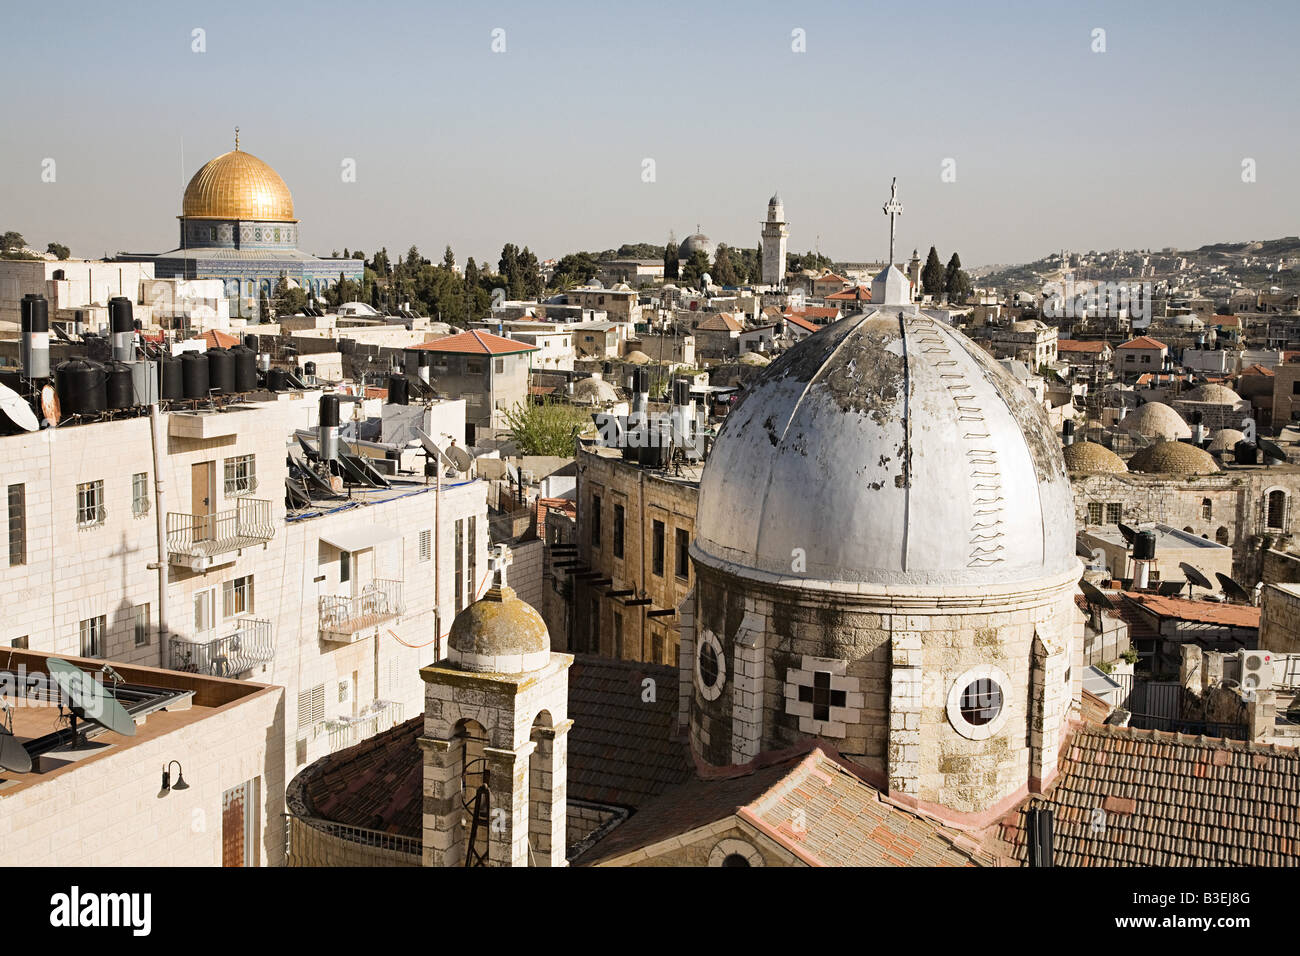 Al-aqsa mosque and dome of the rock - Stock Image